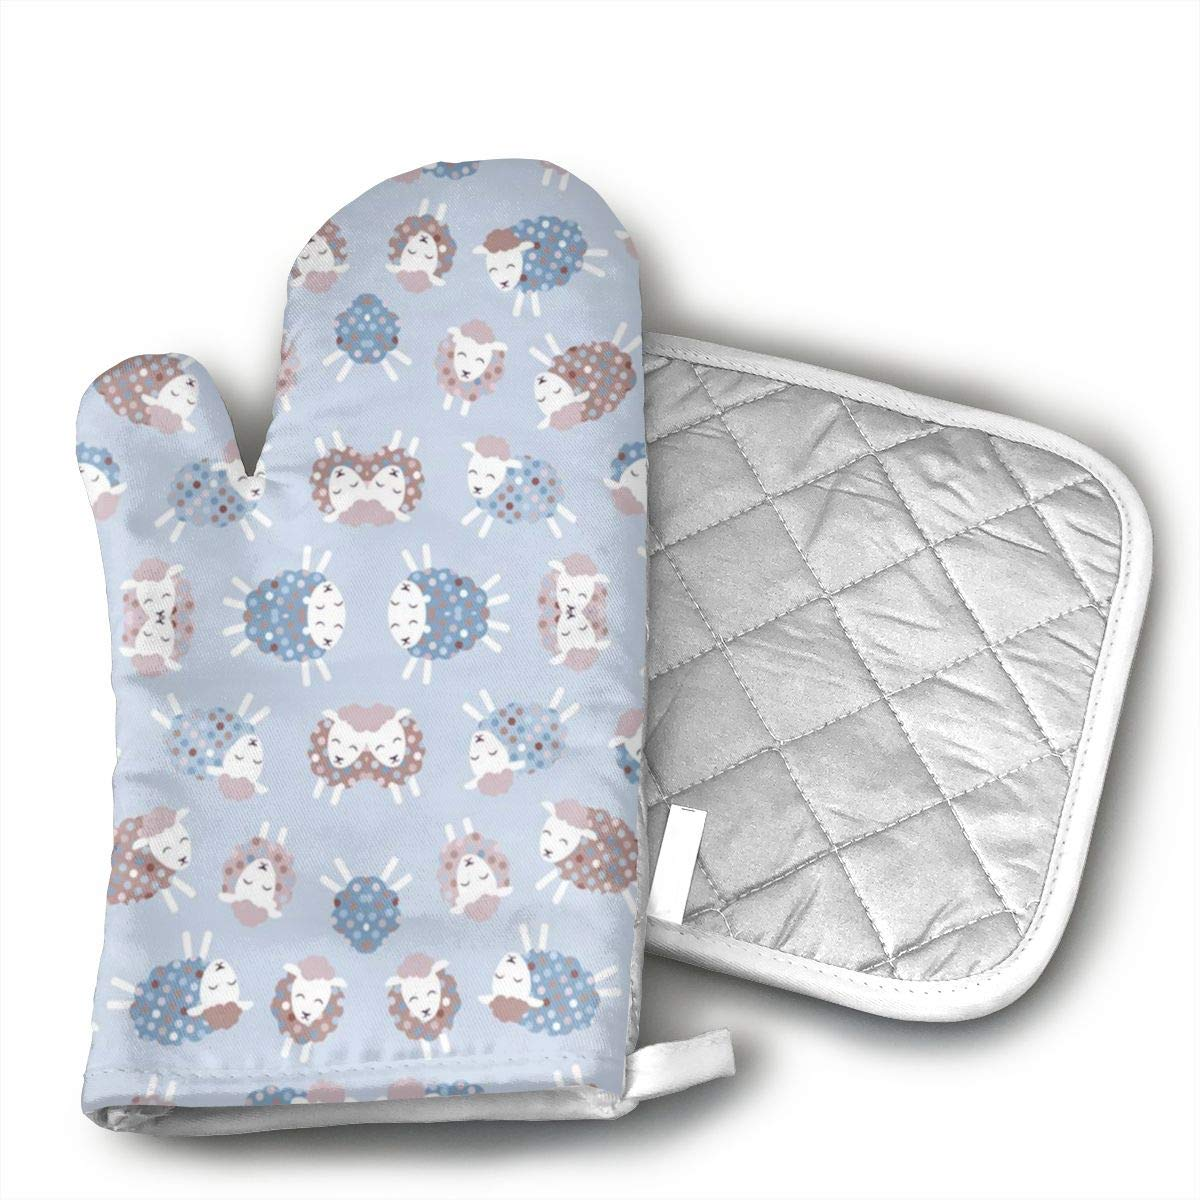 WAWAJD Ditsy Little Lamb Oven Mitts with Thermal Pads for Cooking, Baking, BBQ, Non-Slip Kitchen